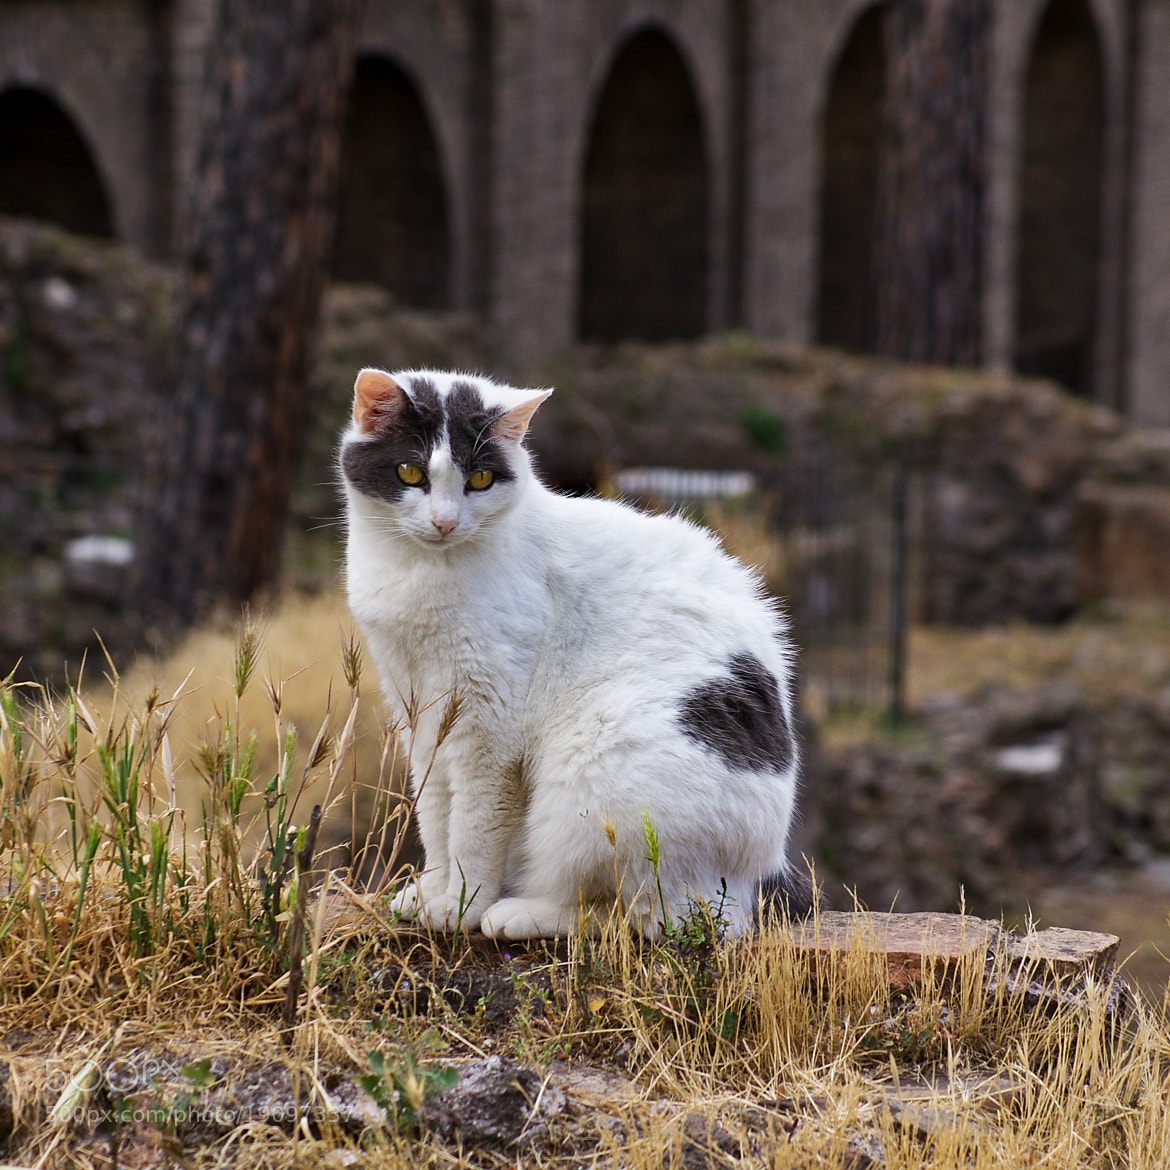 Photograph  Street Cat in Rome by Andrew Kielbowicz on 500px